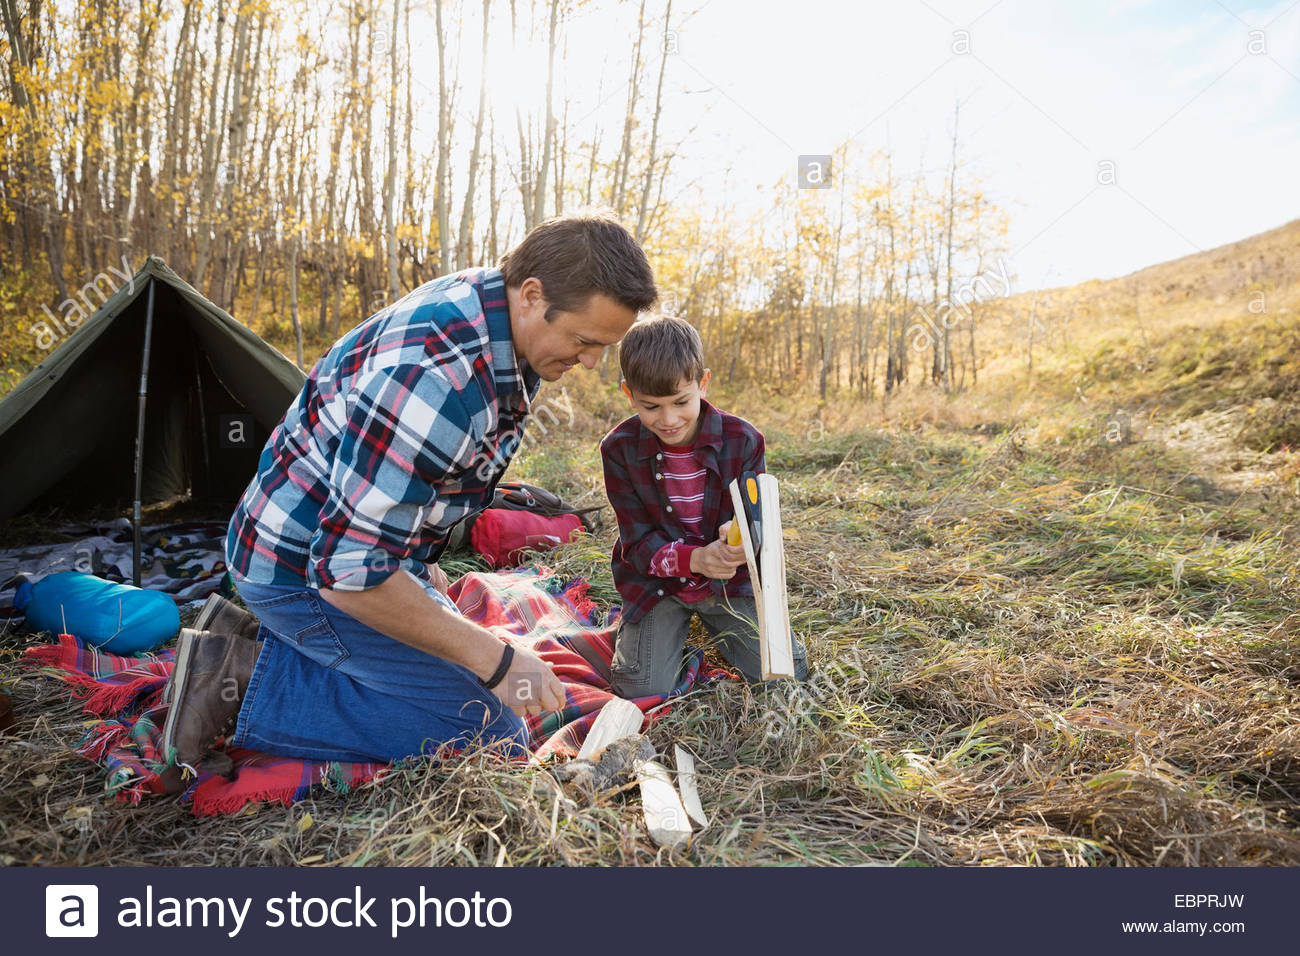 Father and son splitting firewood at campsite - Stock Image